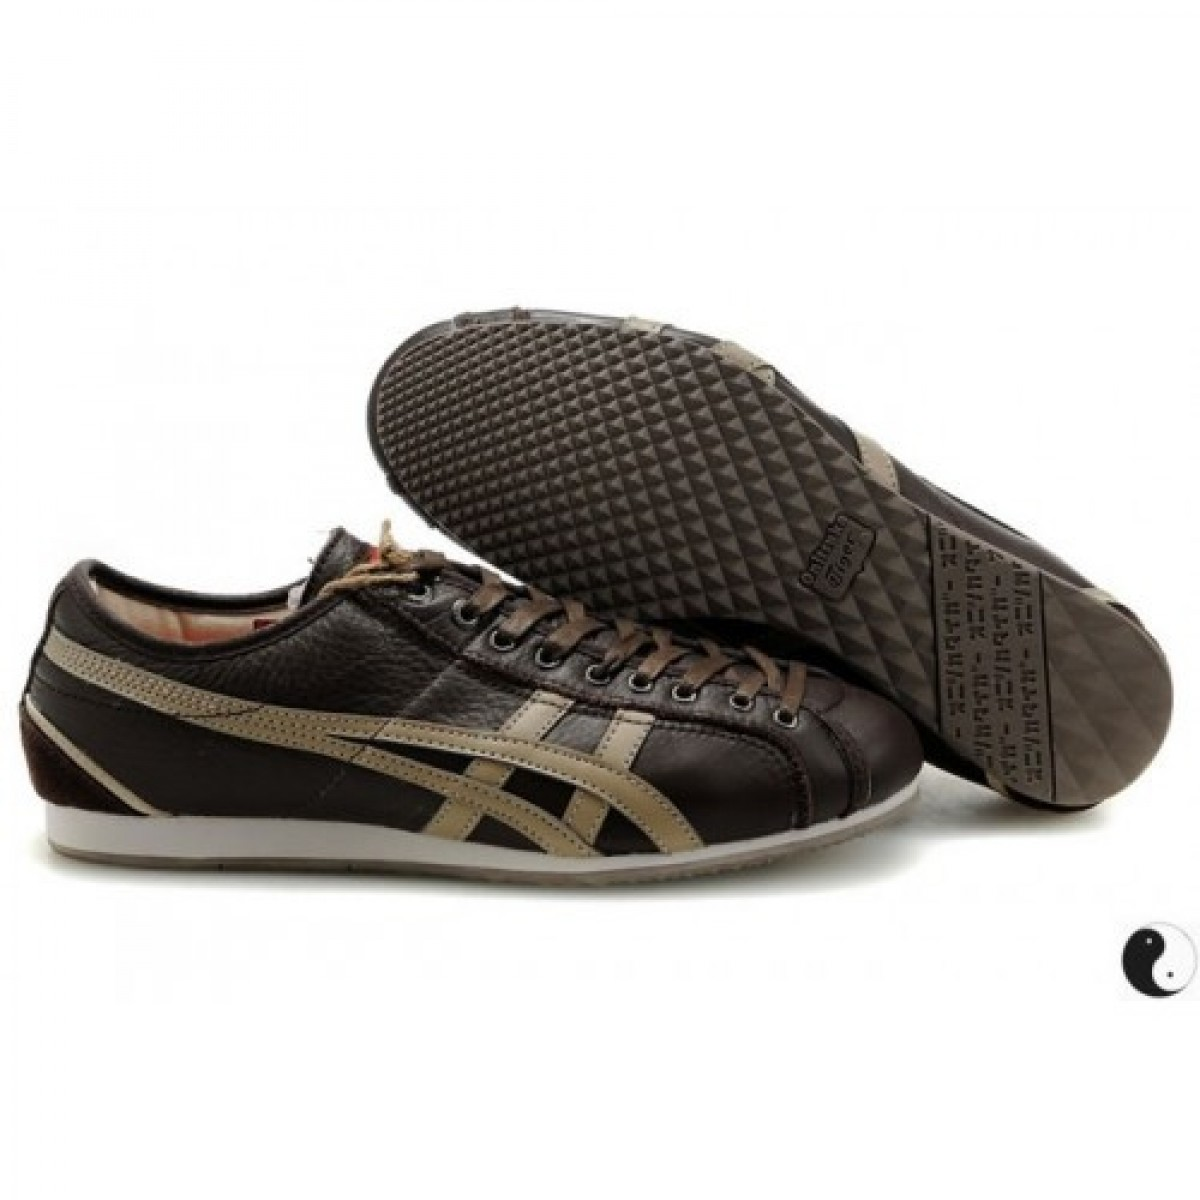 HN1836 Soldes Asics Onitsuka Tiger Olympos Brown beige foncé Chaussures 65703260 Pas Cher